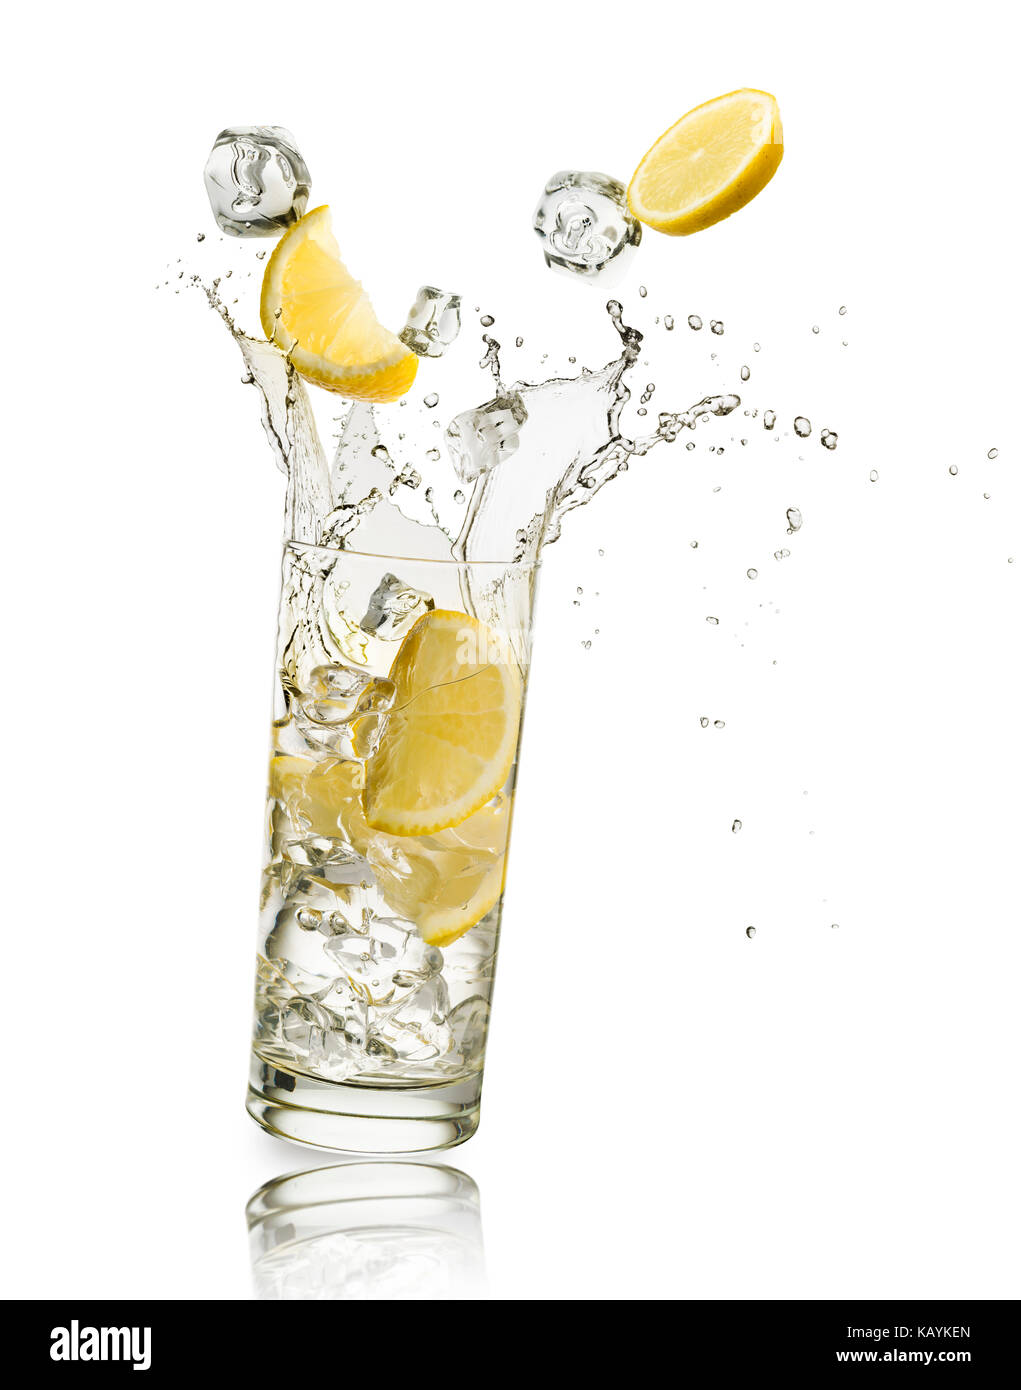 glass full of water with lemon slices and ice cubes falling and splashing water, on white background - Stock Image